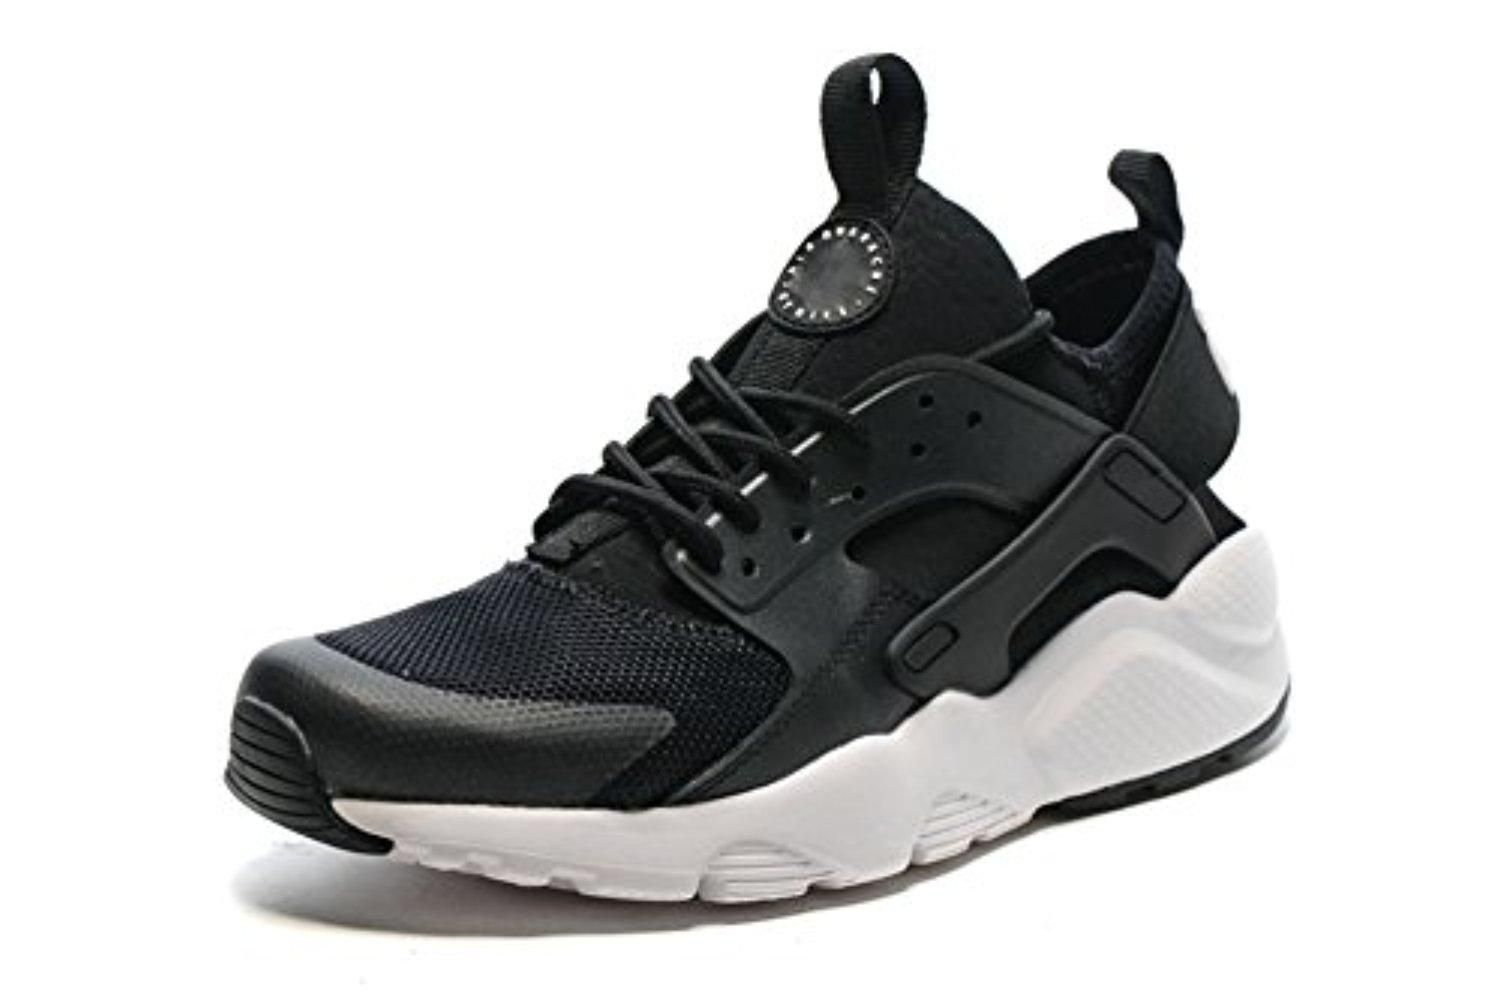 Nike Mens Air Huarache Run Ultra Se Black Dark Grey Mesh Trainers 41 EU  Multicolore (Marsua/Roalre/Talco 000) WAvMJYGt5